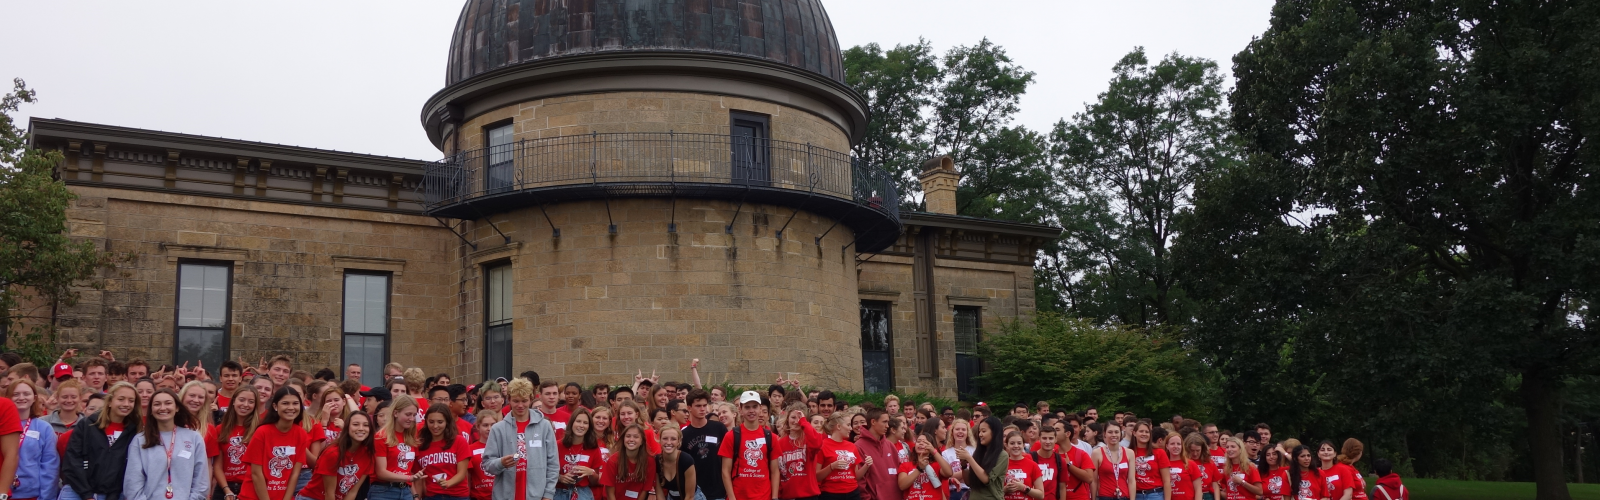 Honors students in front of Washburn Observatory